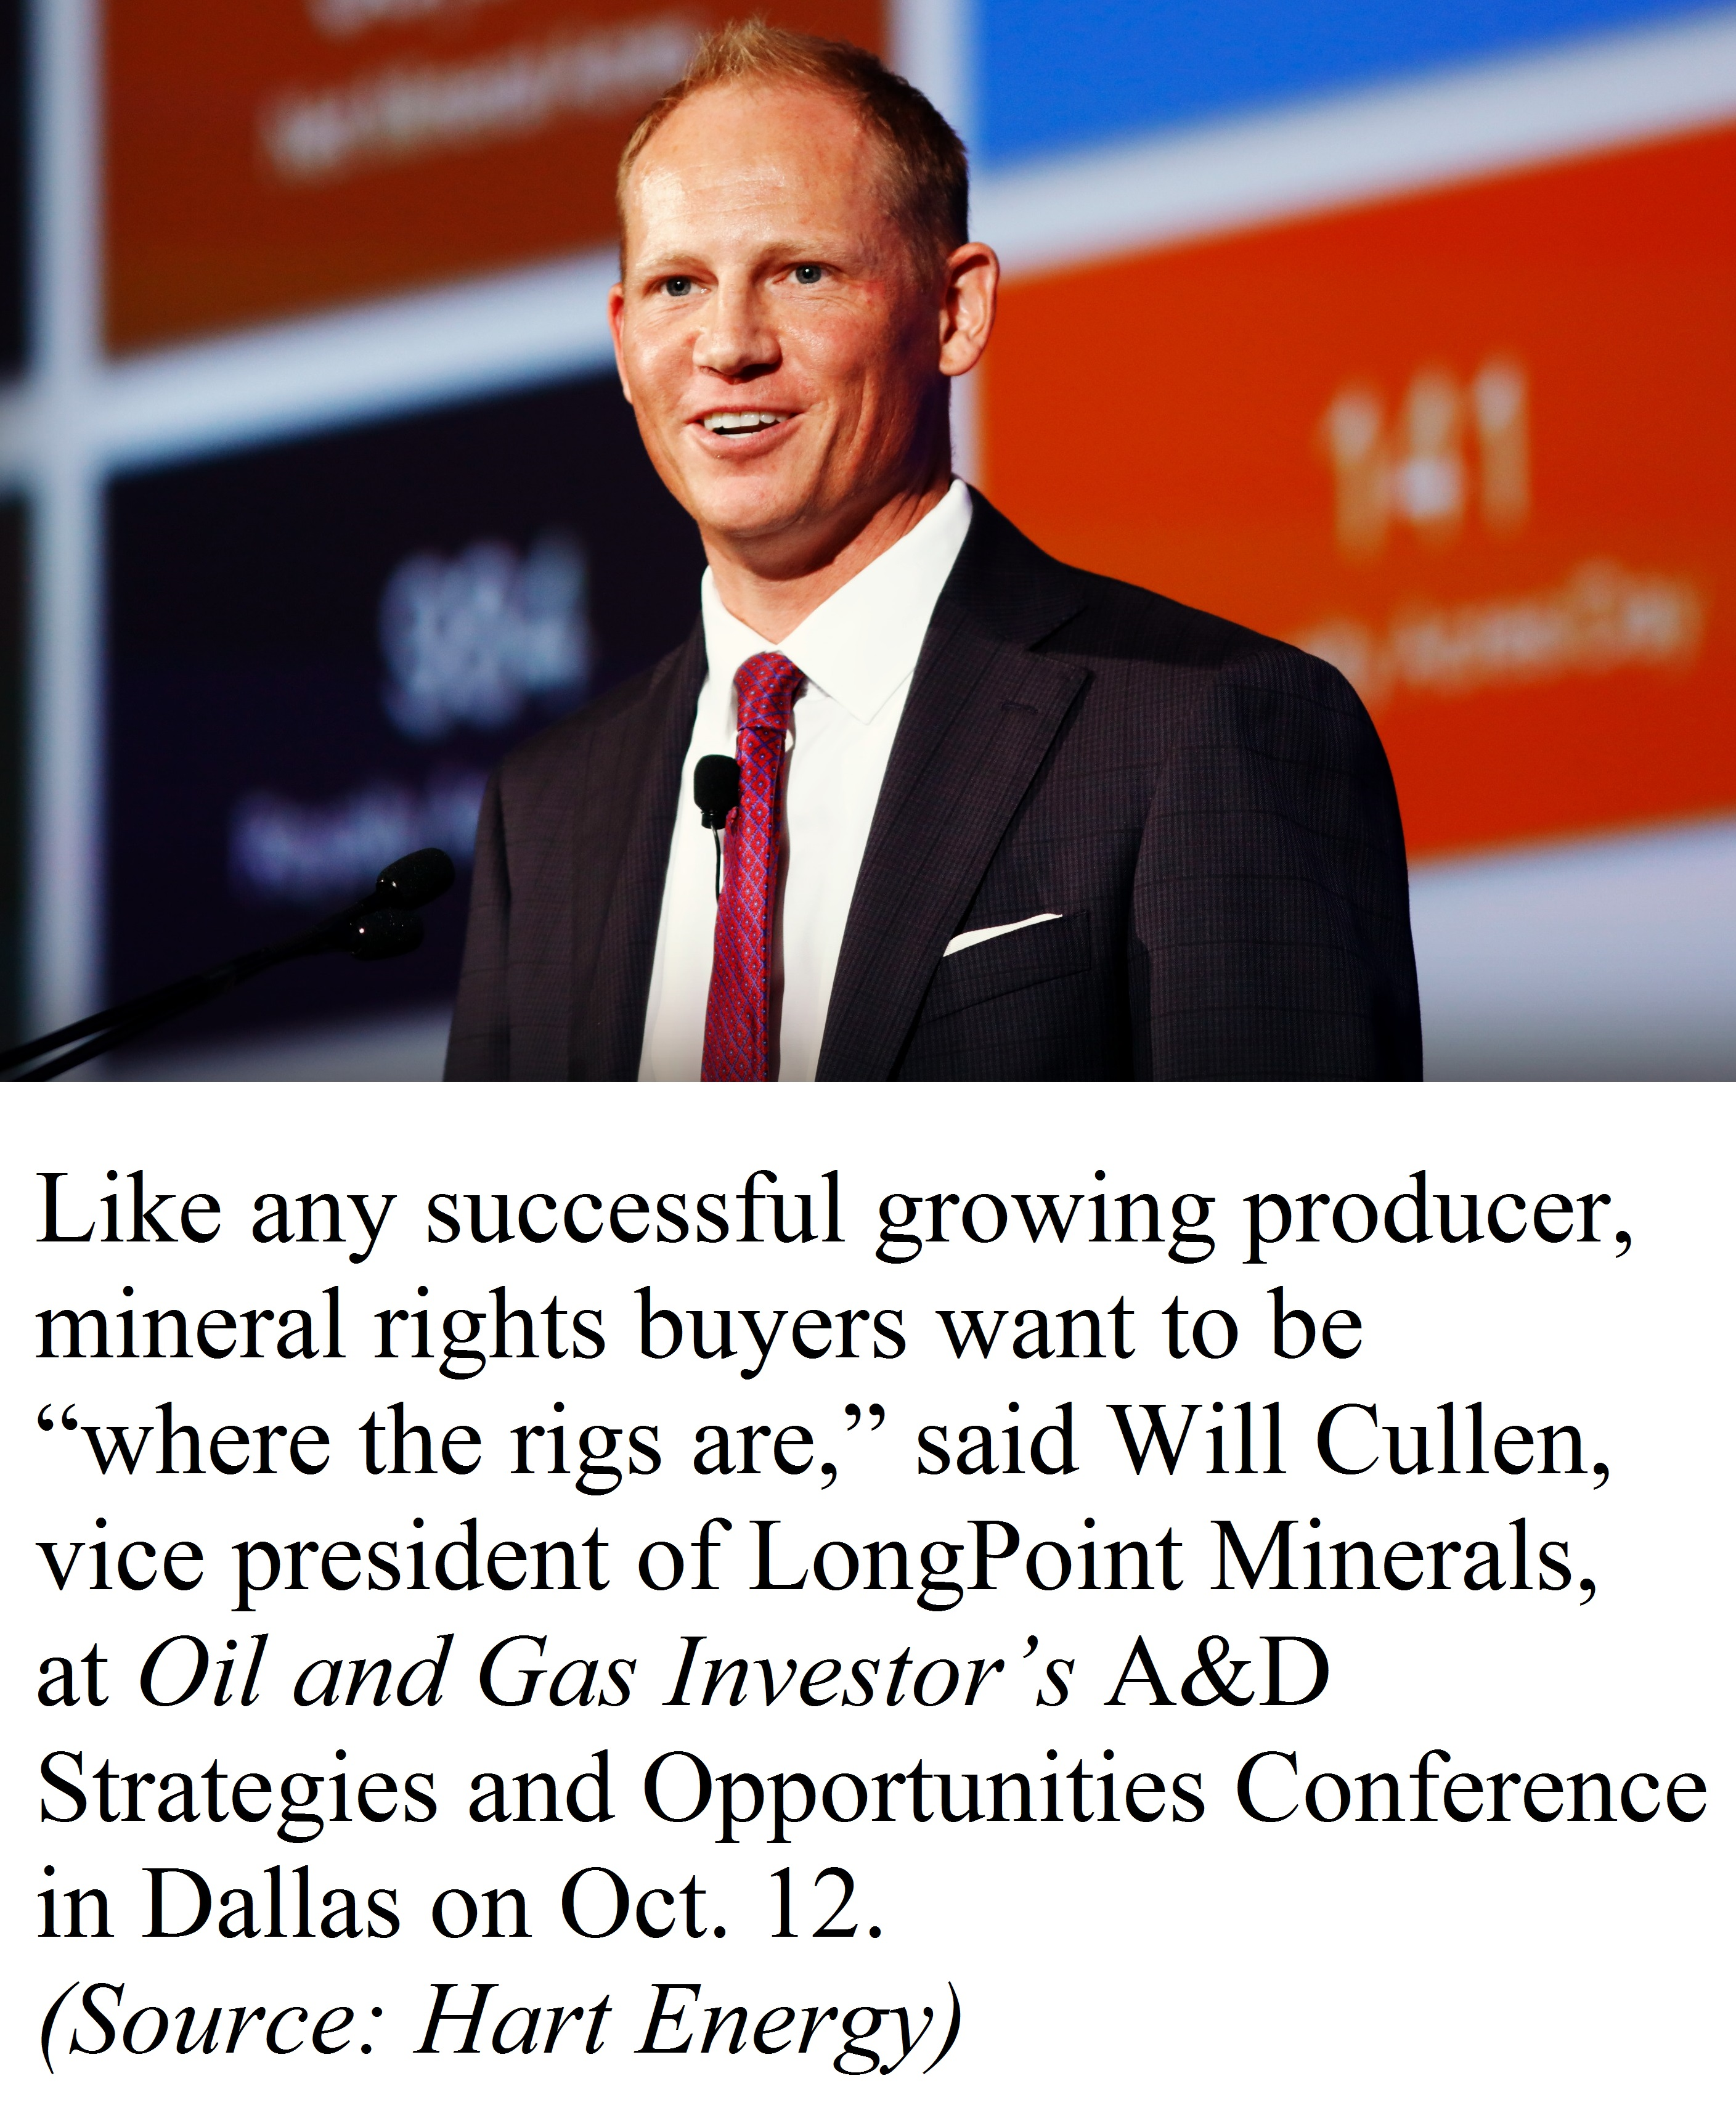 LongPoint Minerals Vice President Will Cullen